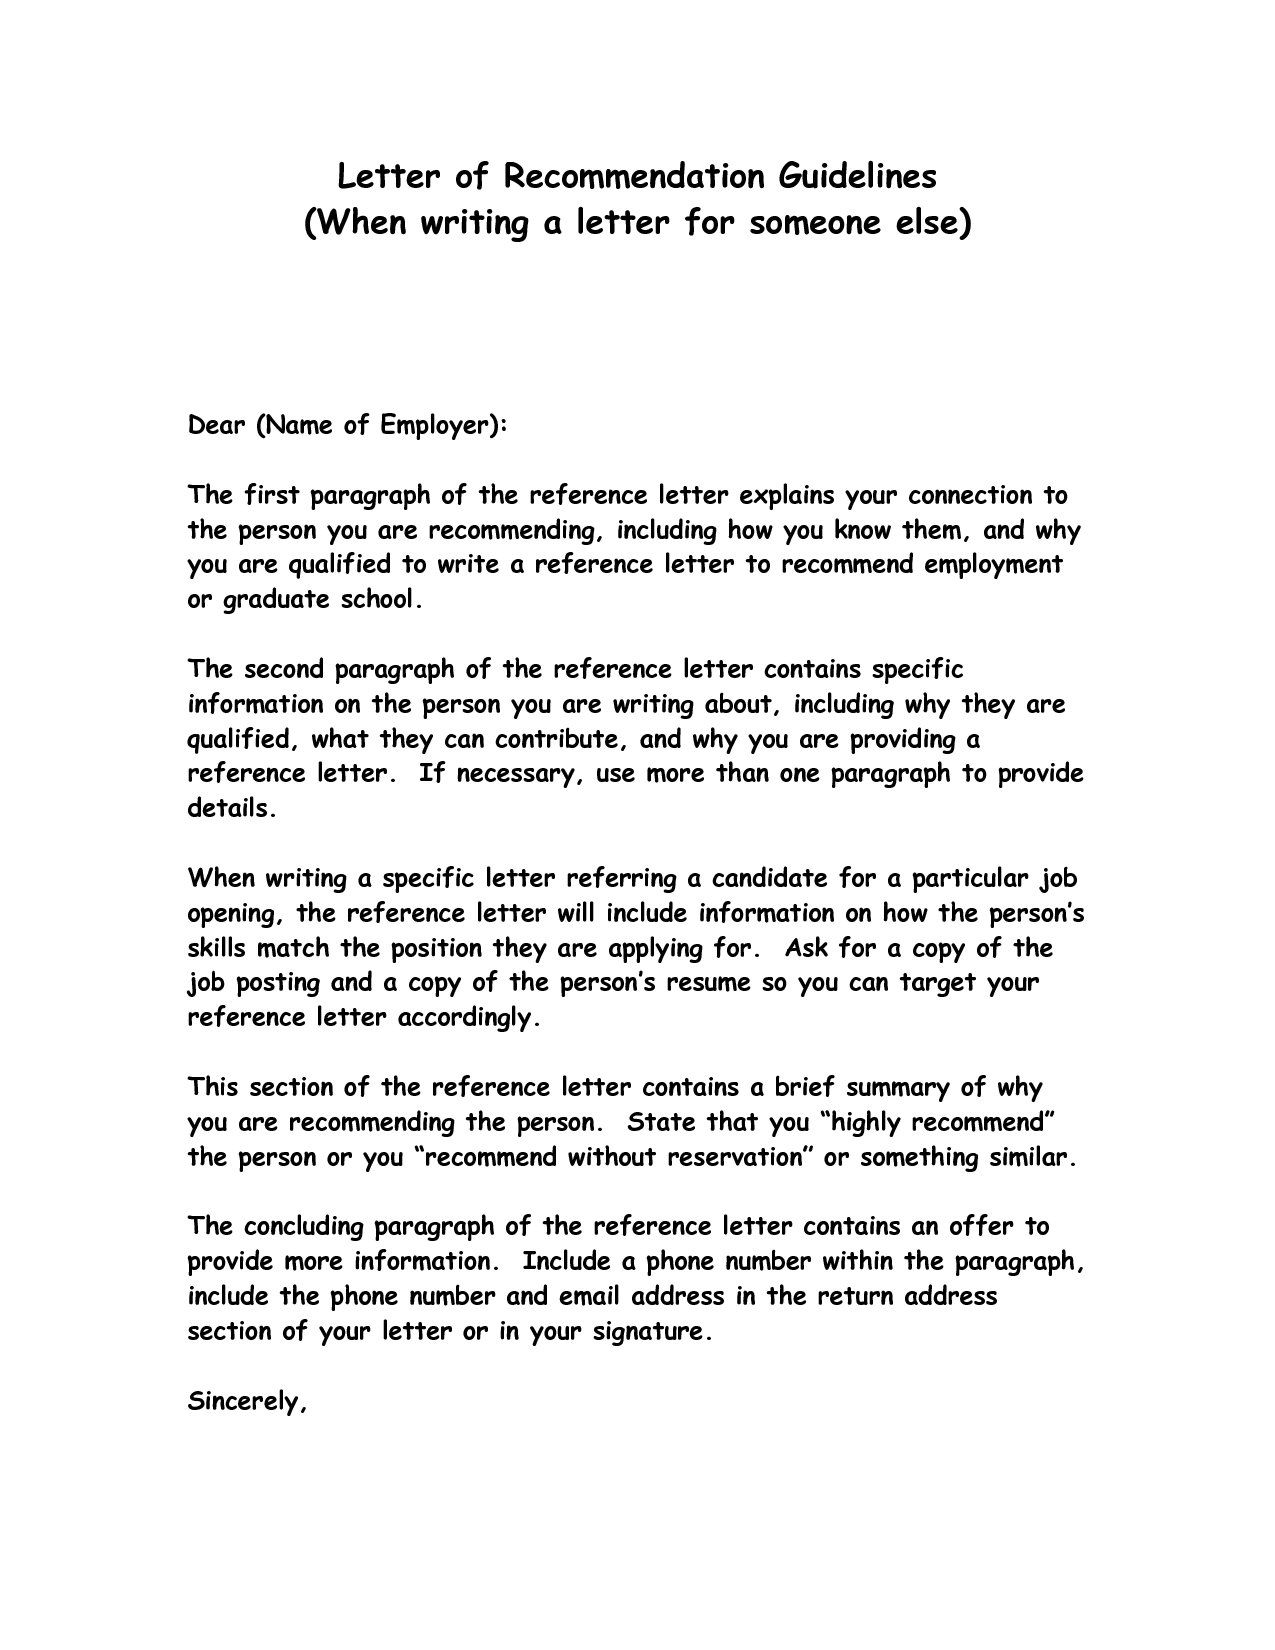 How To Write A Reference Letter Letter Women In Business